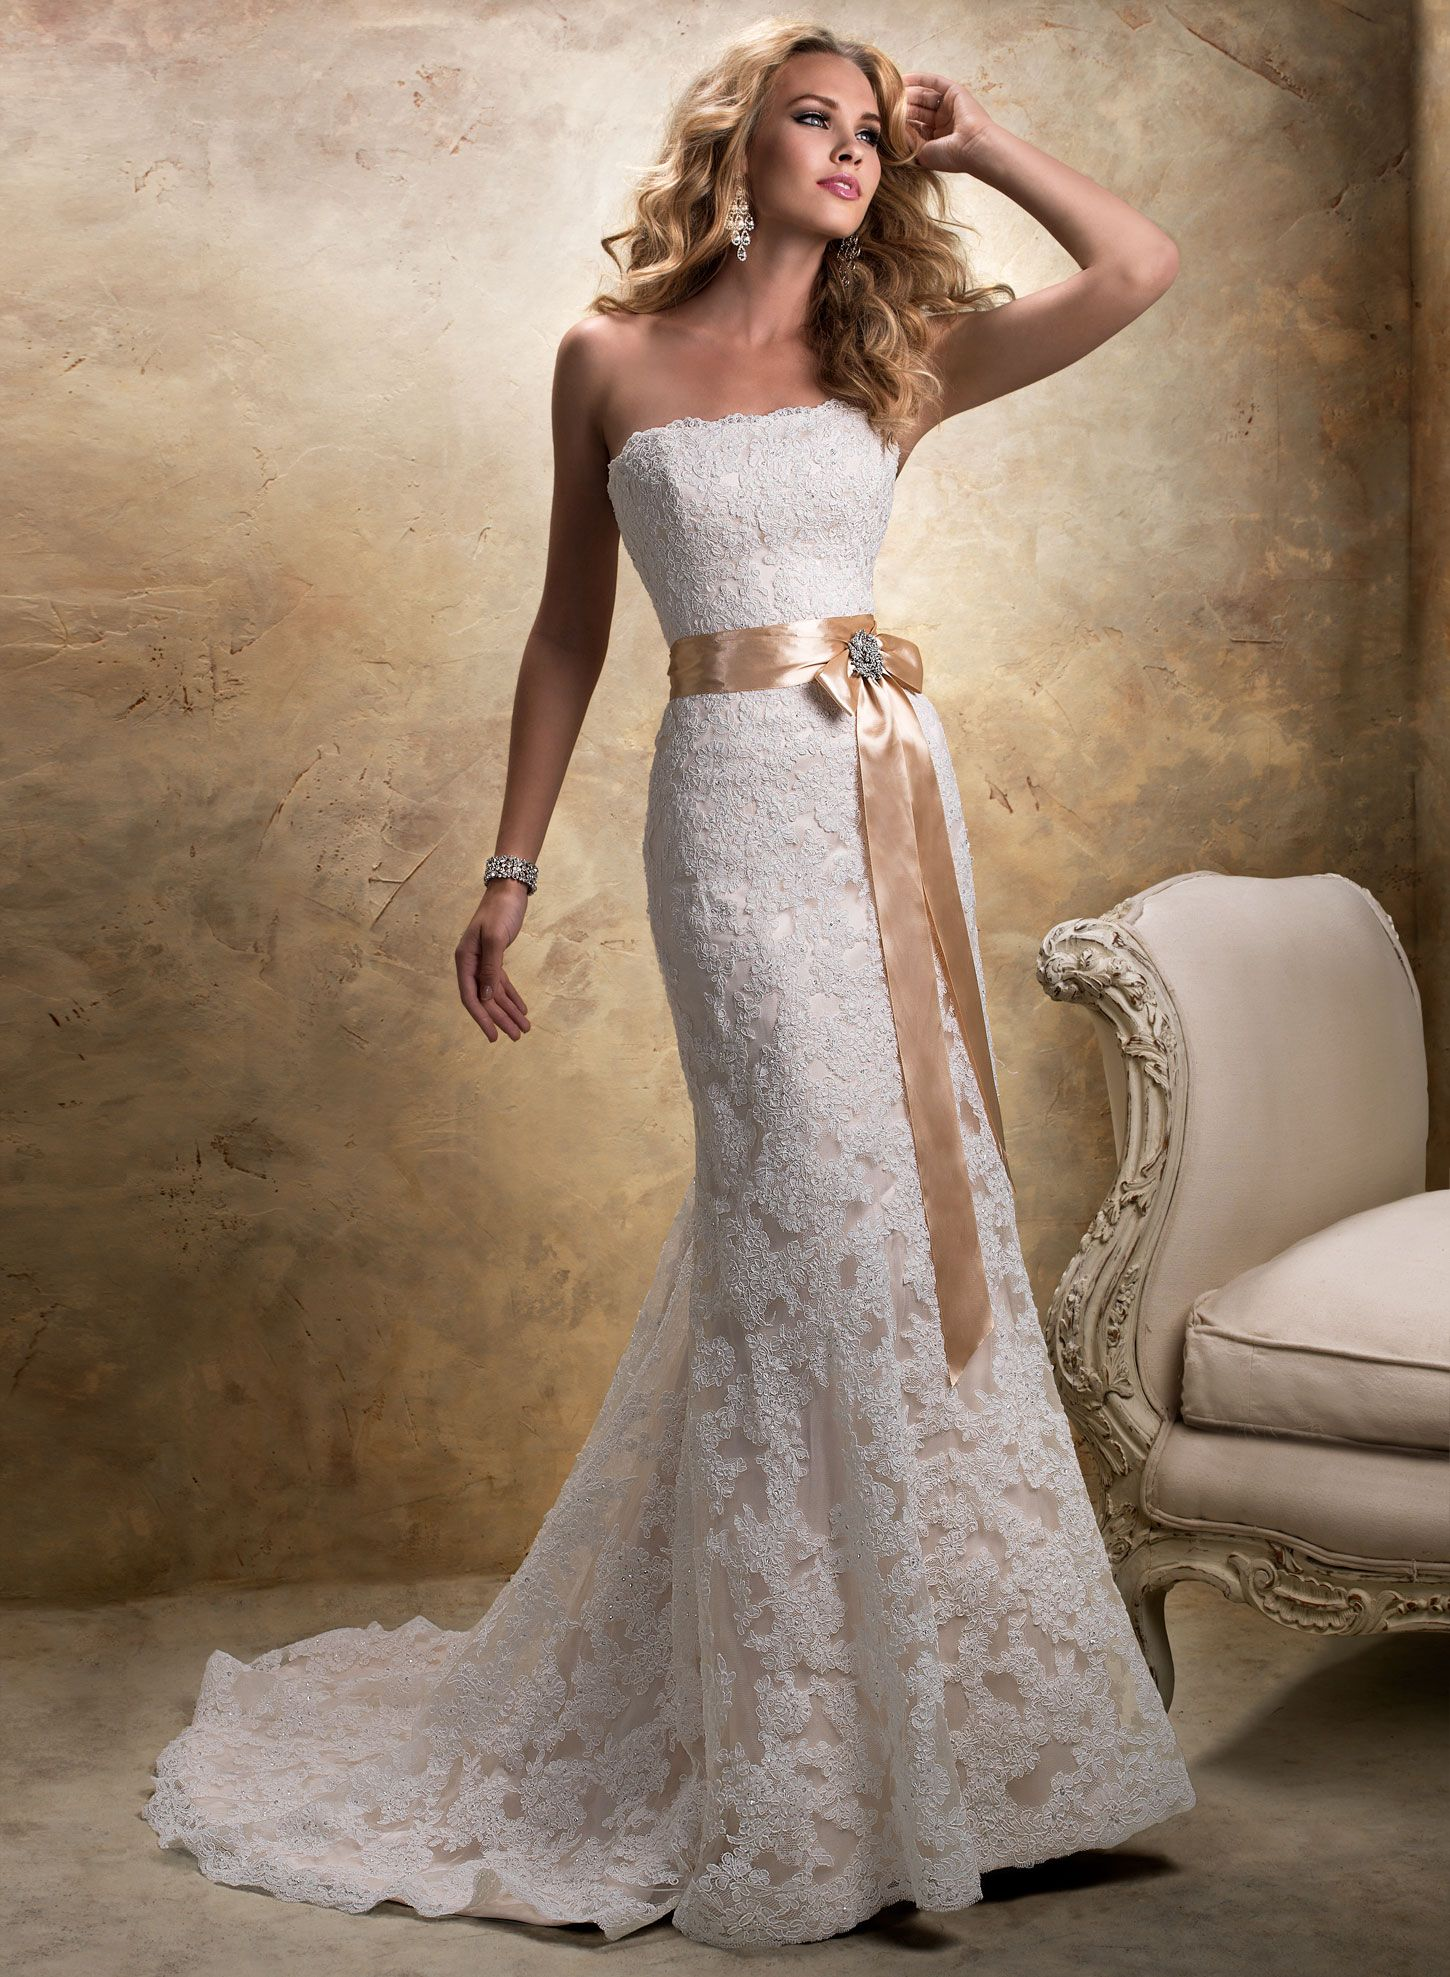 Maggie Sottero Wedding Dresses | Maggie sottero, Bridal suite and Gowns